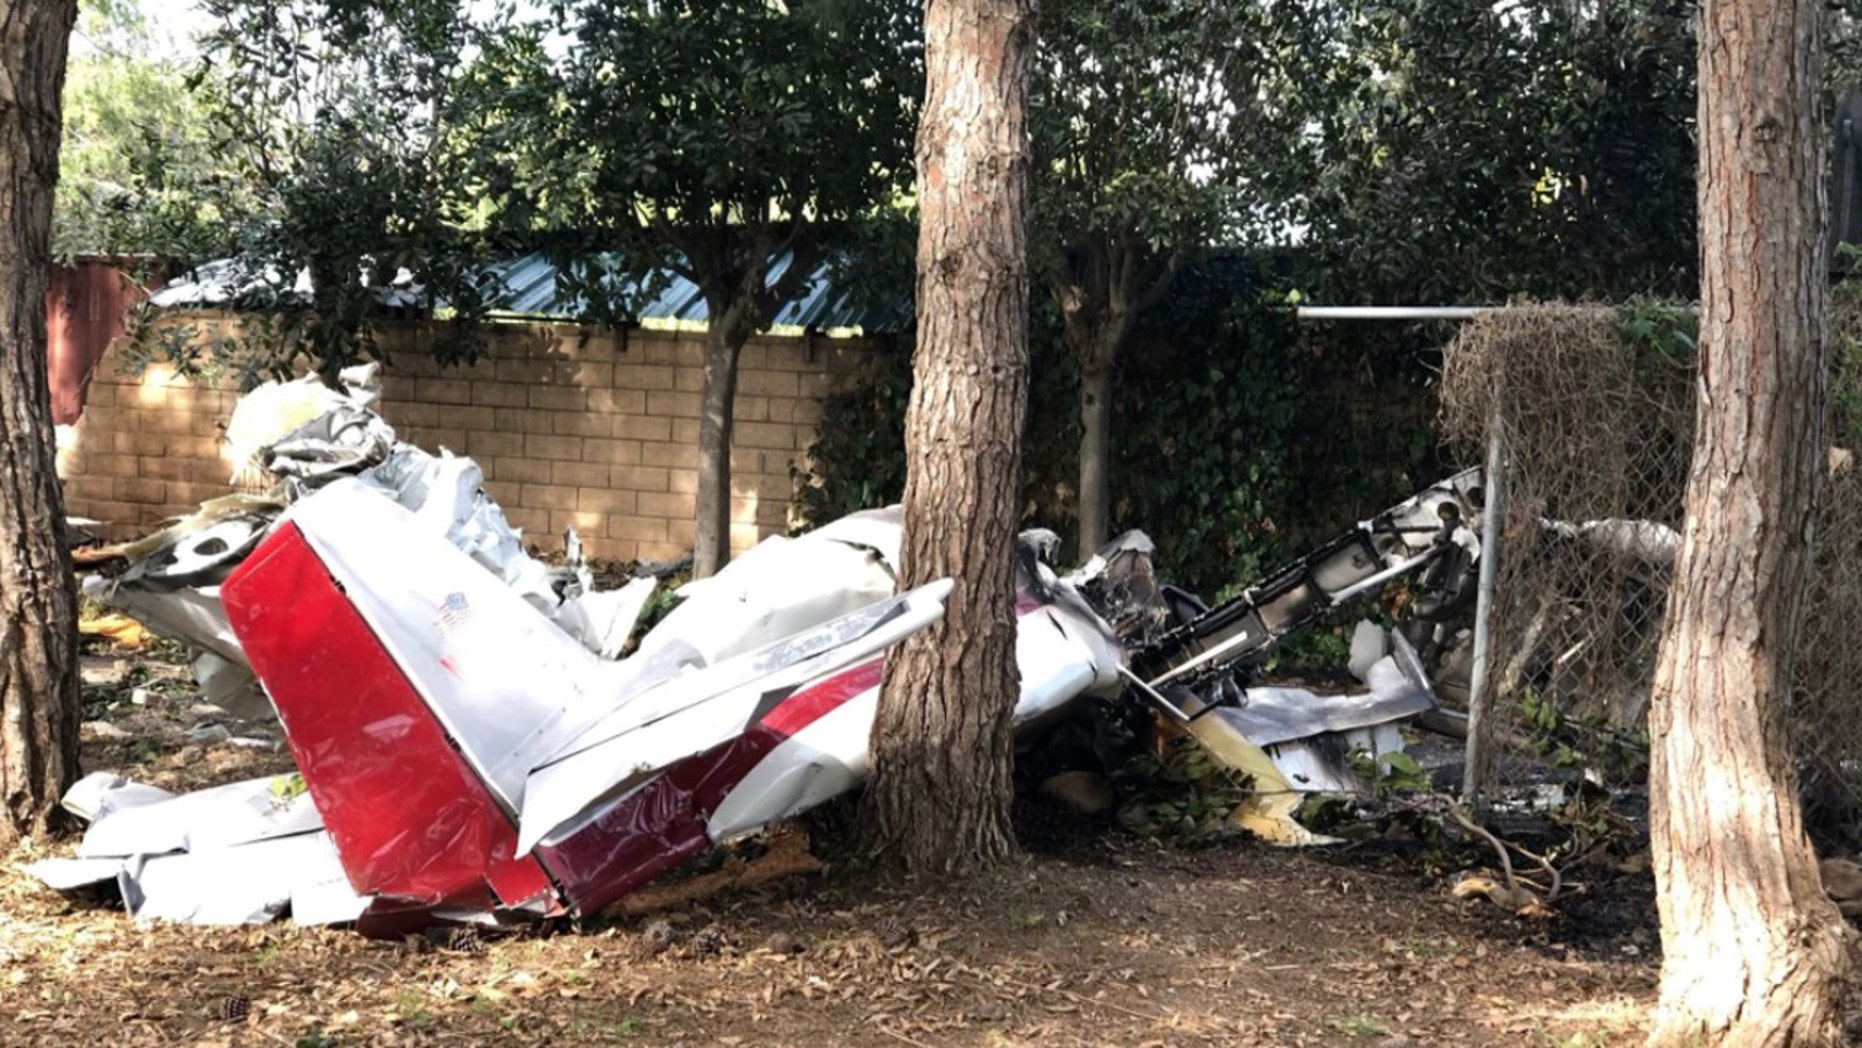 Ian Gregor, spokesman for the FAA, said that the plane caught fire after it crashed into a shed. He confirmed the plan, a Van's RV-6A aircraft, was home-built.